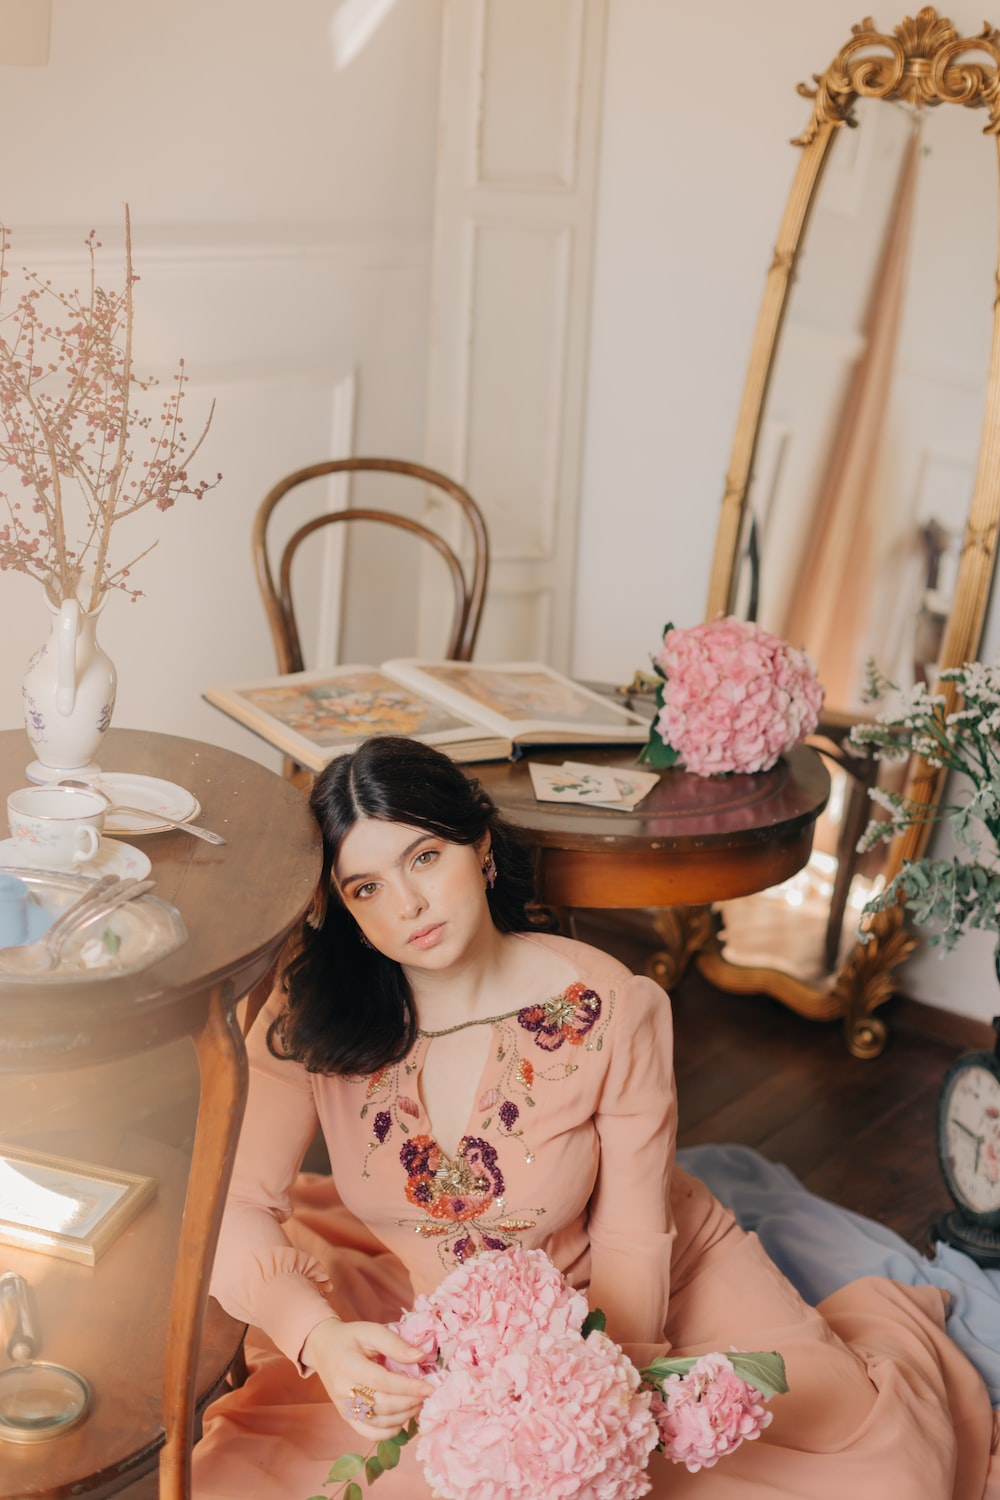 woman in pink and white floral dress sitting on chair